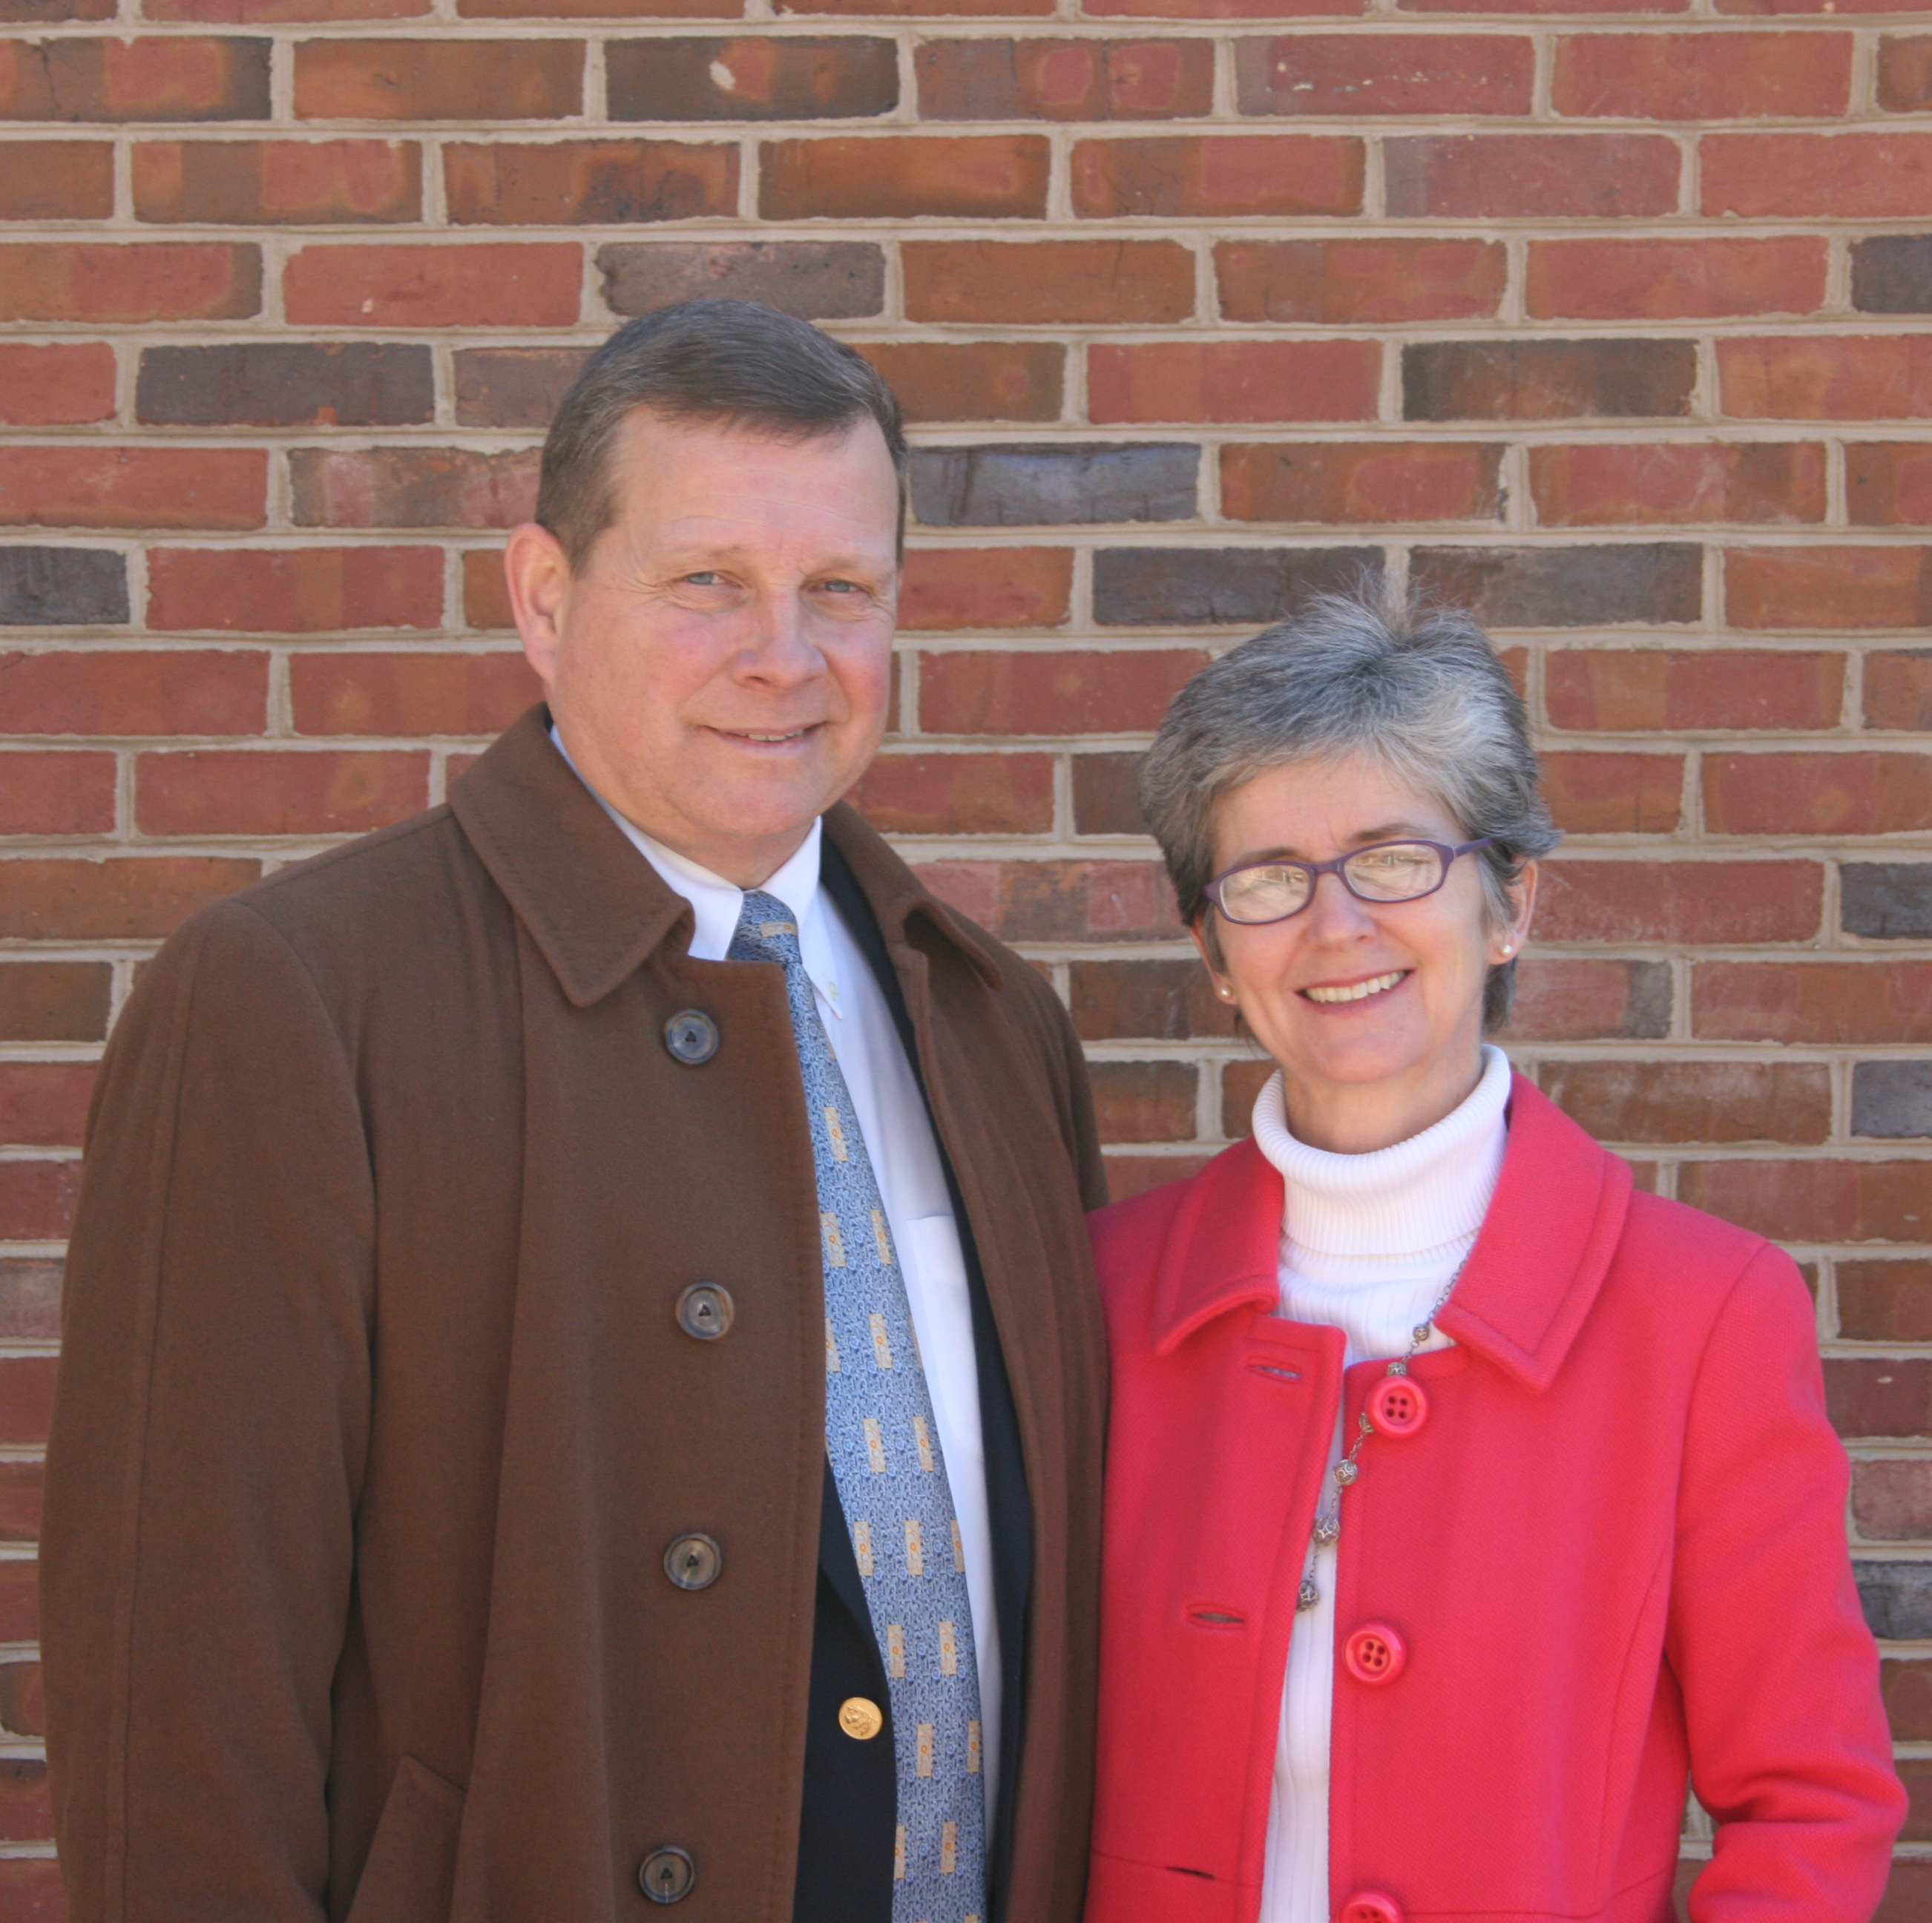 Dr. and Mrs. Doug McPherson